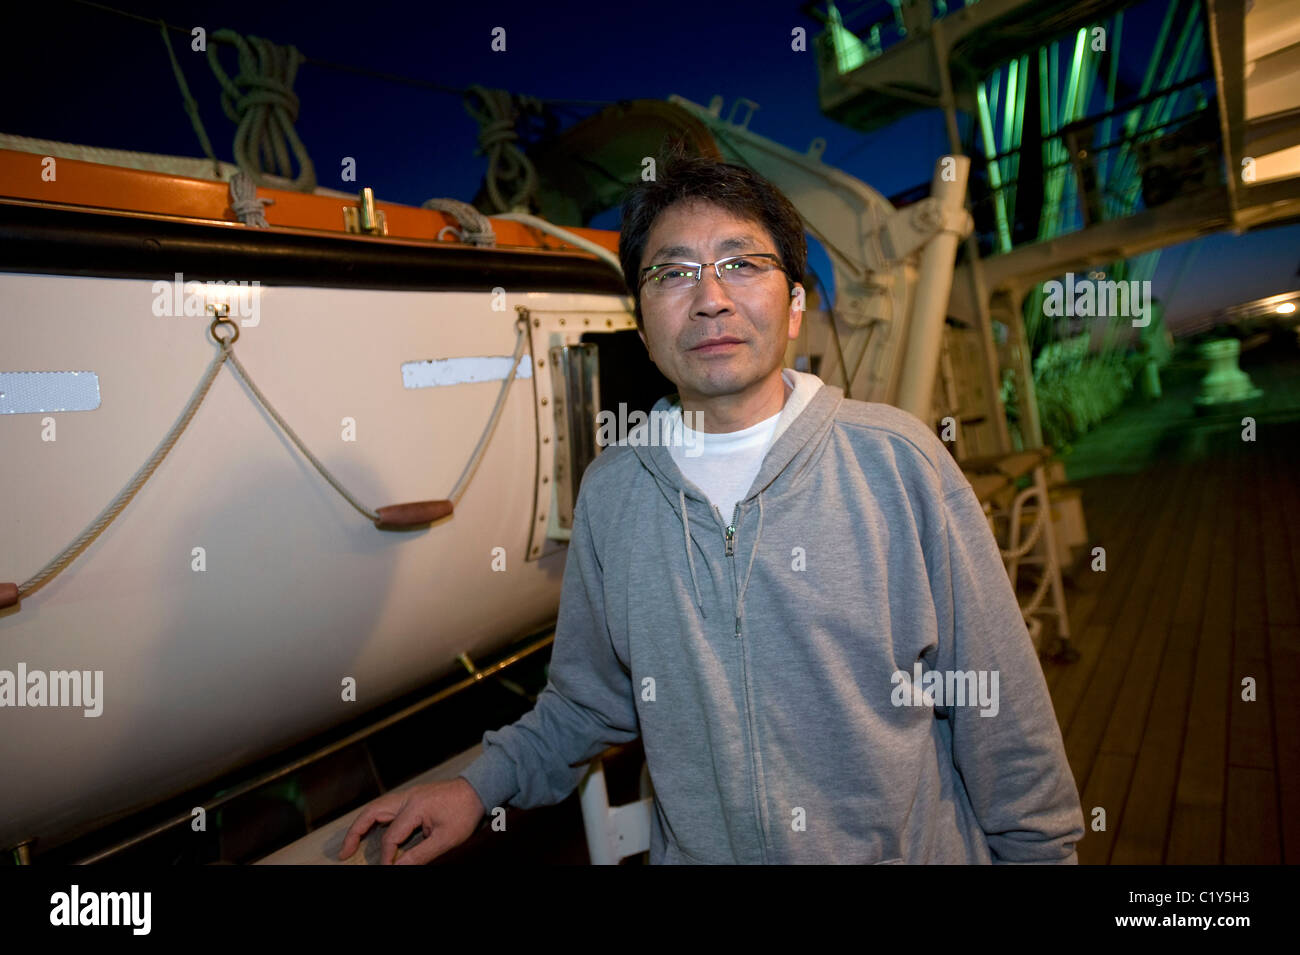 A member of the so-called Fukushima 50 is given poses for a photo - Stock Image